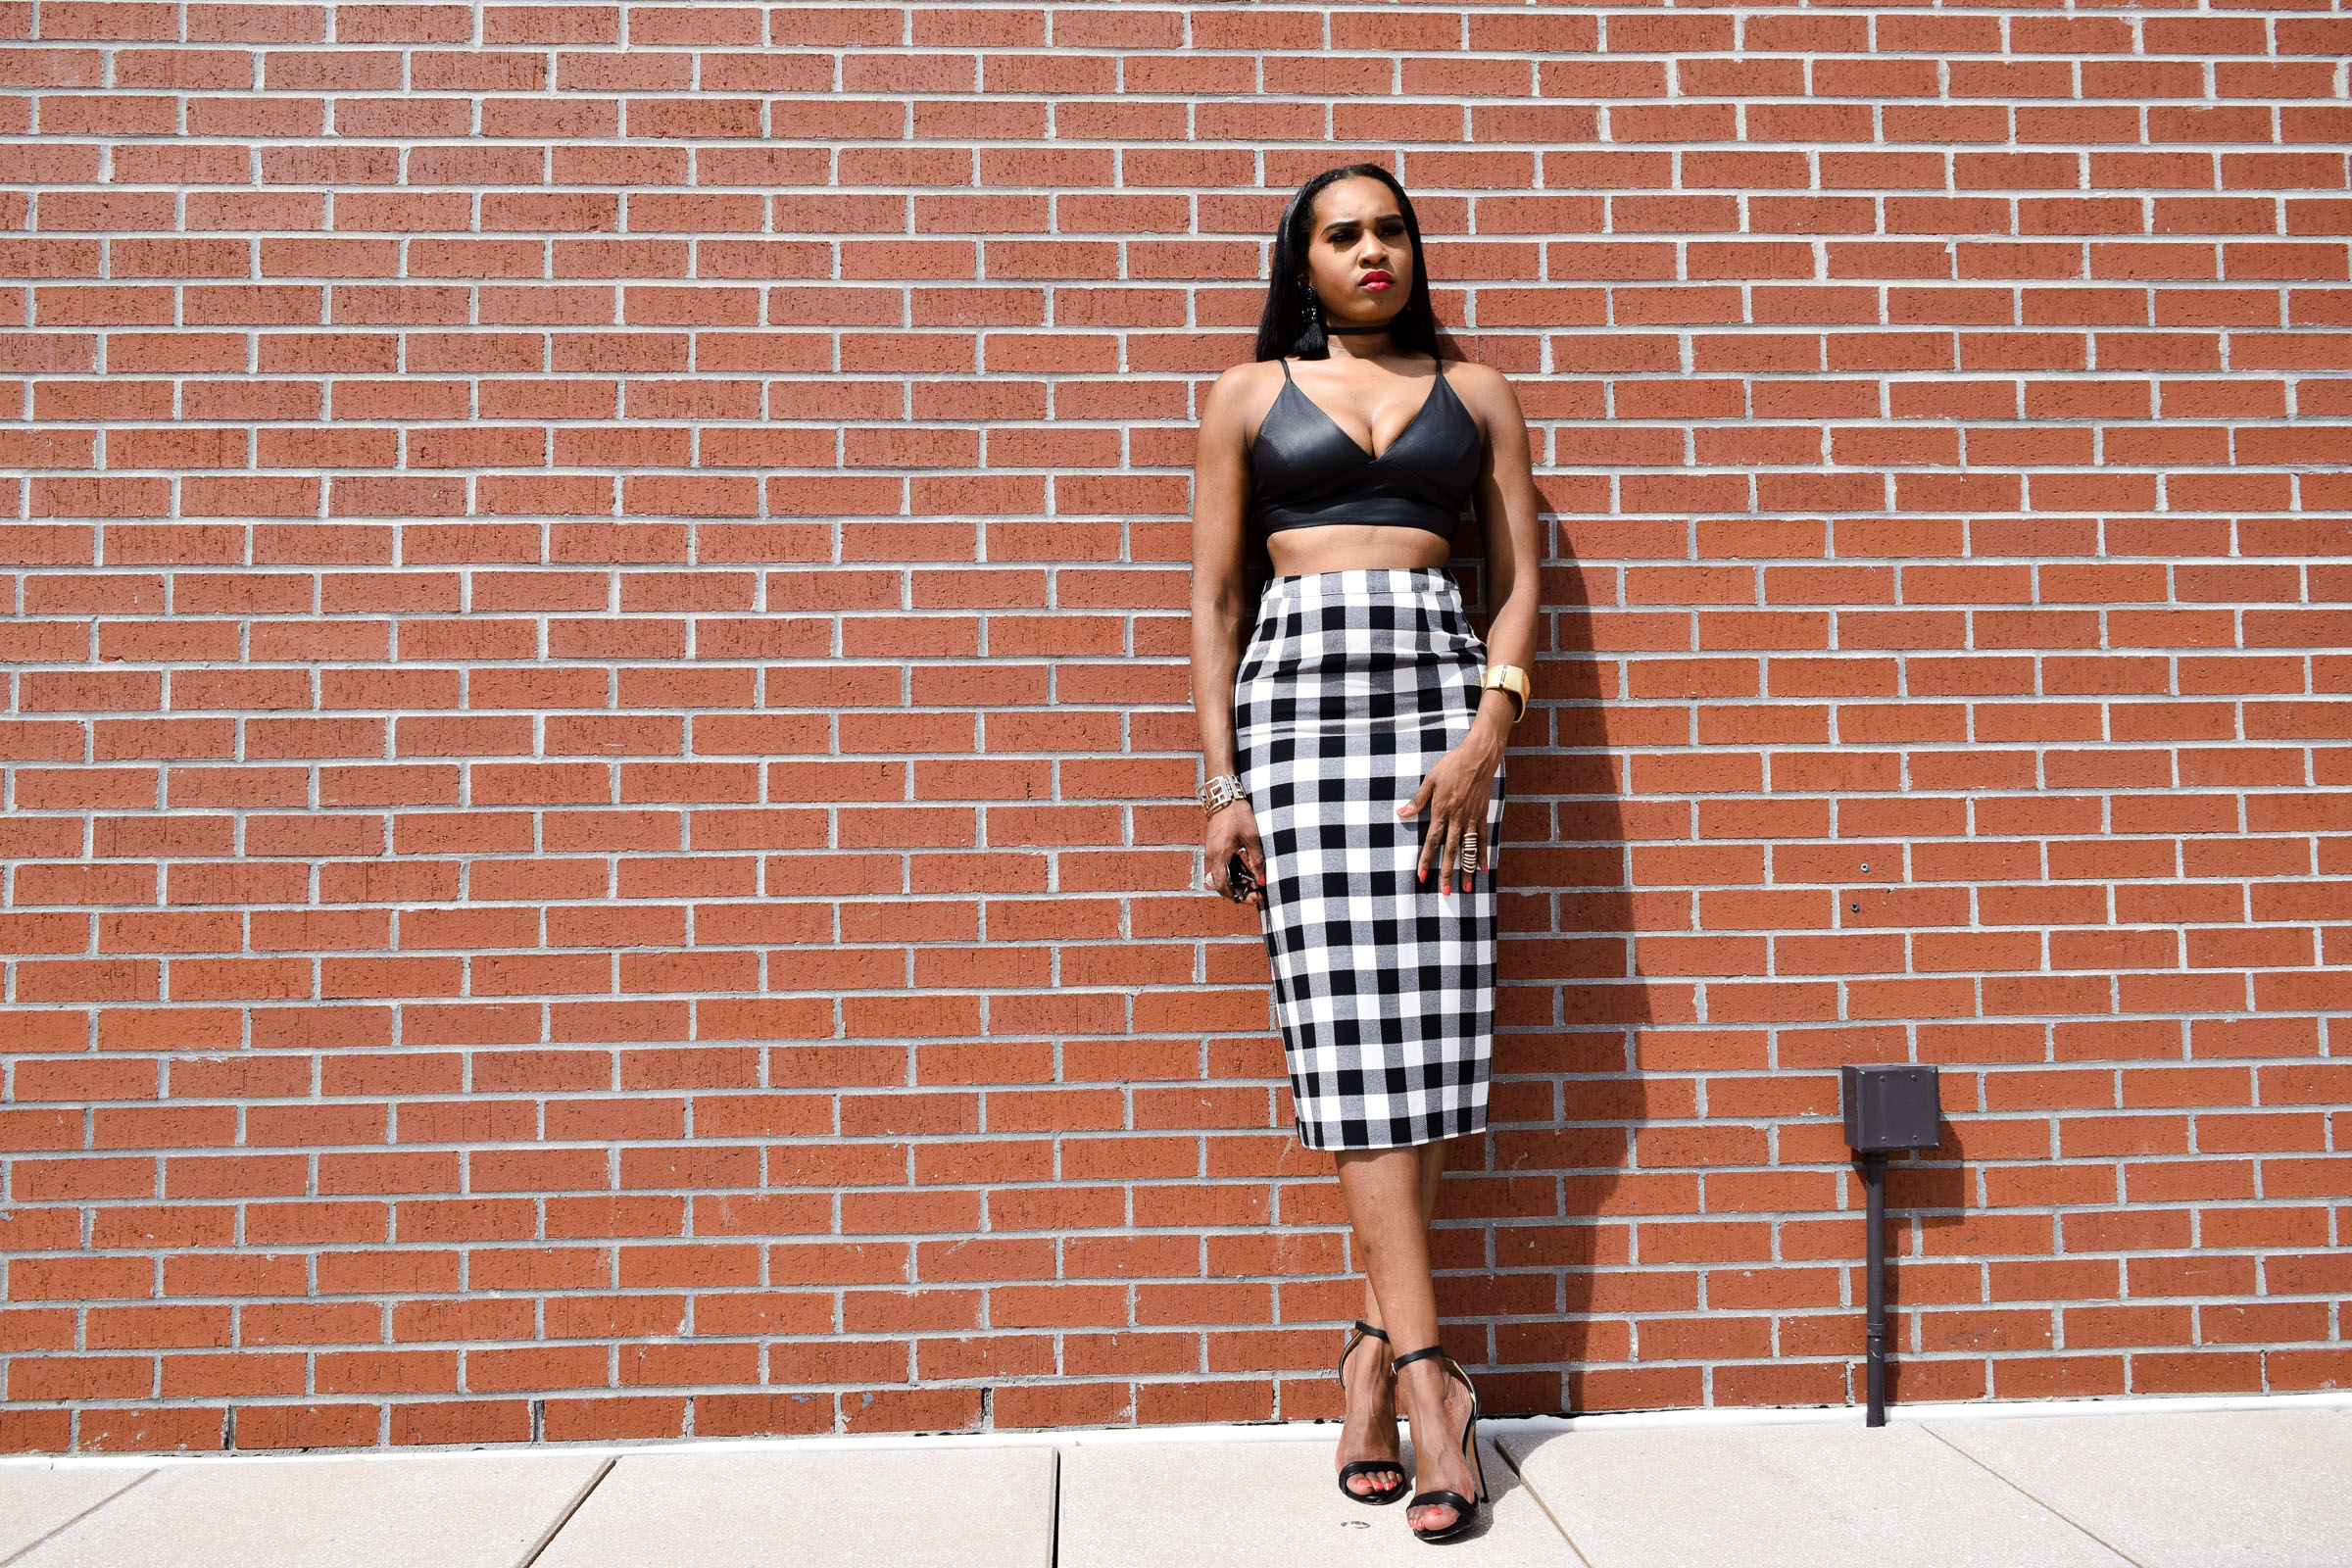 Style-Files-WhoWhatWear-Target-collection-black-white-gingham-pencil-skirt-forever-21-black-leather-bralette-top-justfab-catherina-black-ankle-strap-sandals-Target-Mossimo-vest-who-to-wear-gingham-OohLaLaBlog-2